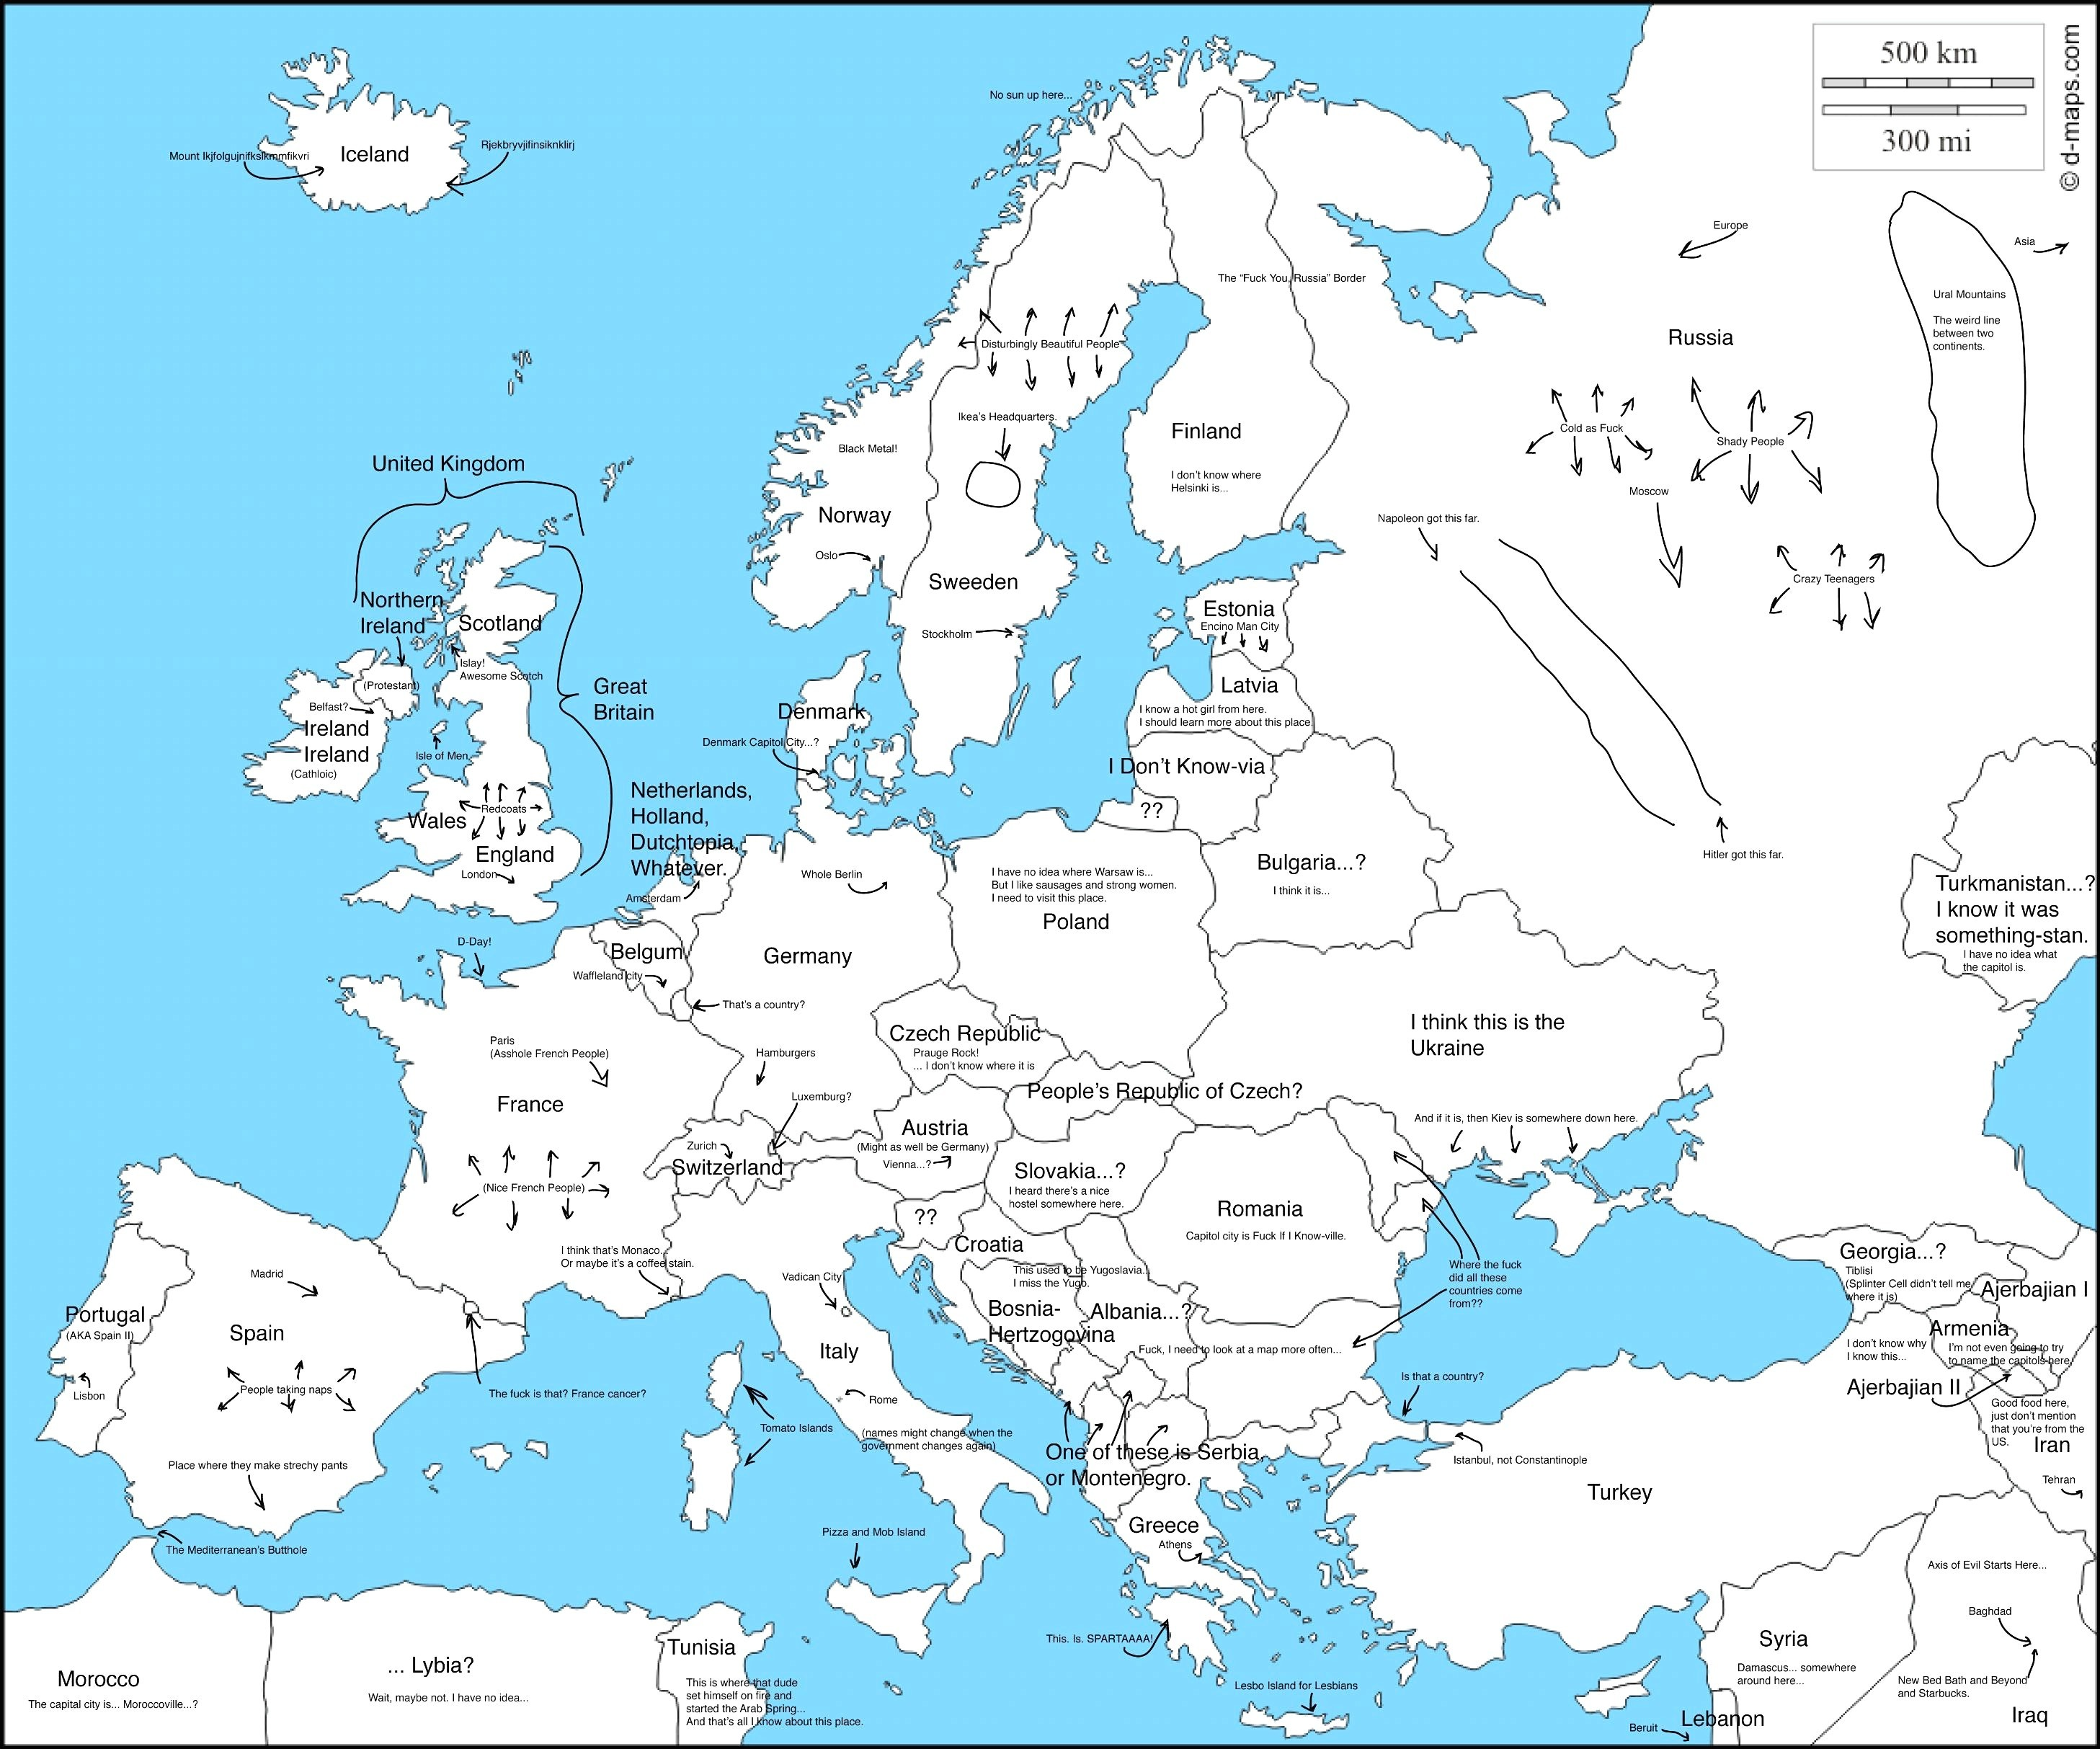 Labeled Europe Map Blank.Europe Clipart Labled Picture 1588742 Europe Clipart Labled